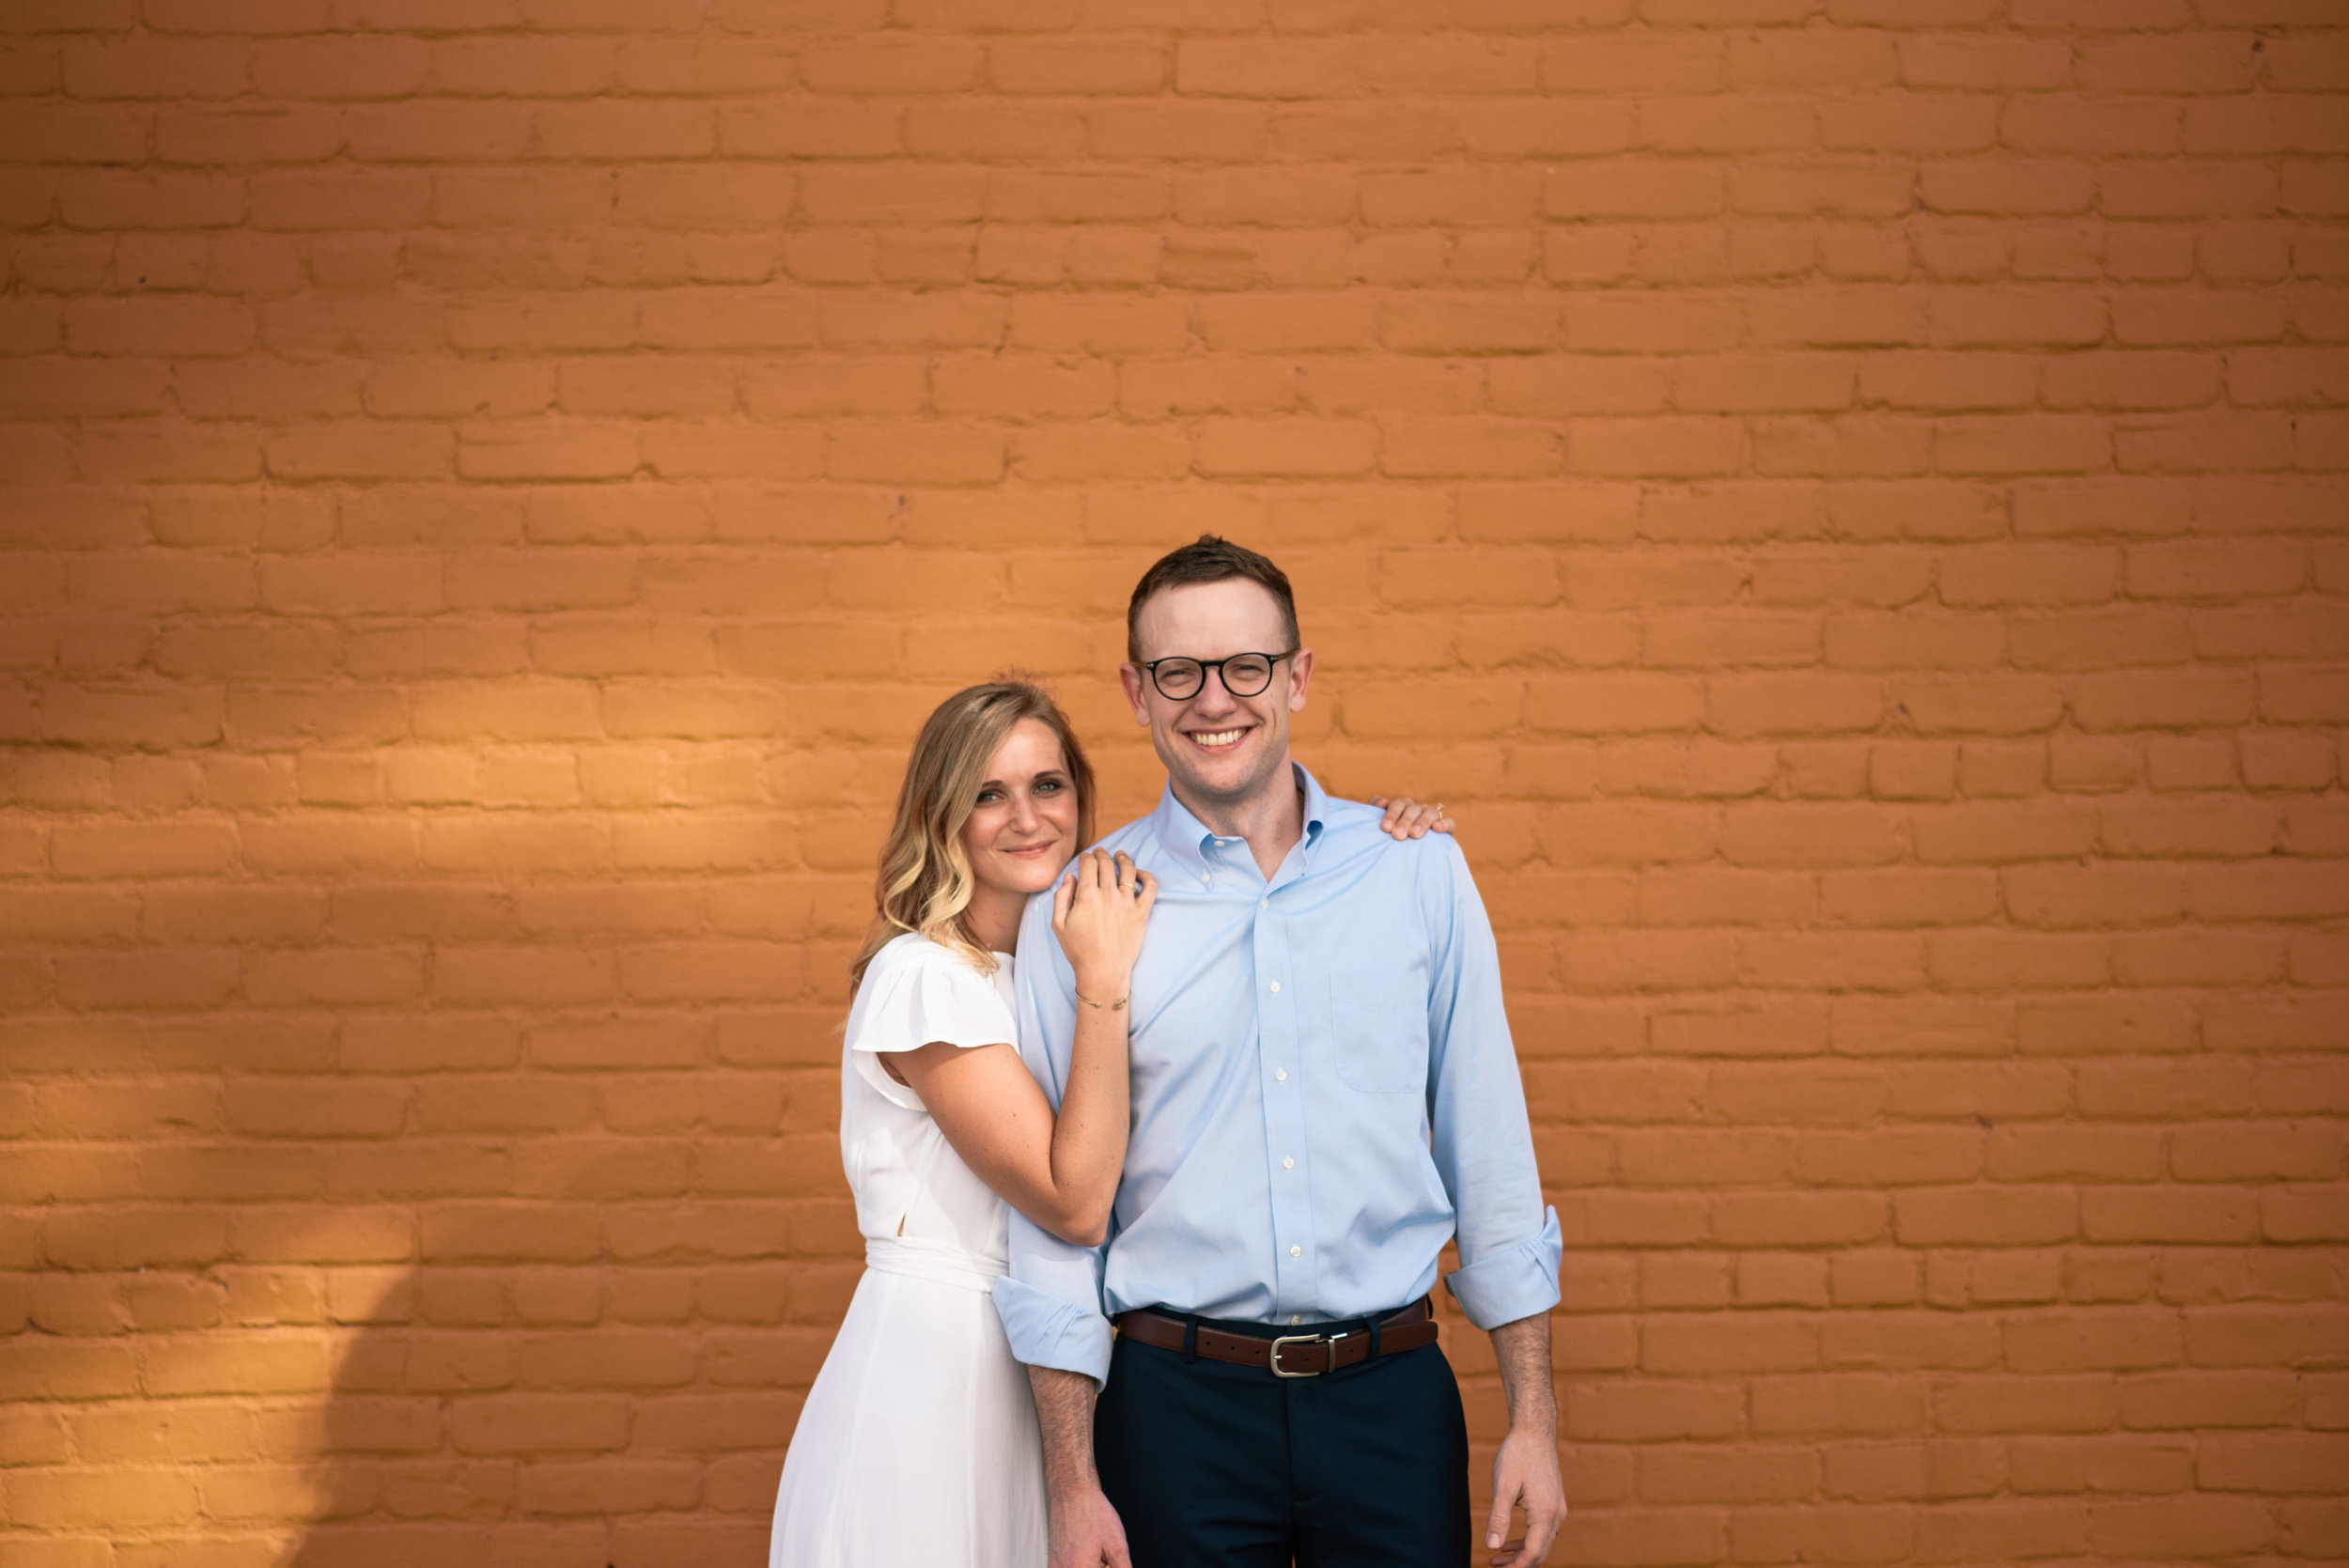 taryn-and-jackson-engagement-save-the-date (48 of 219).jpg